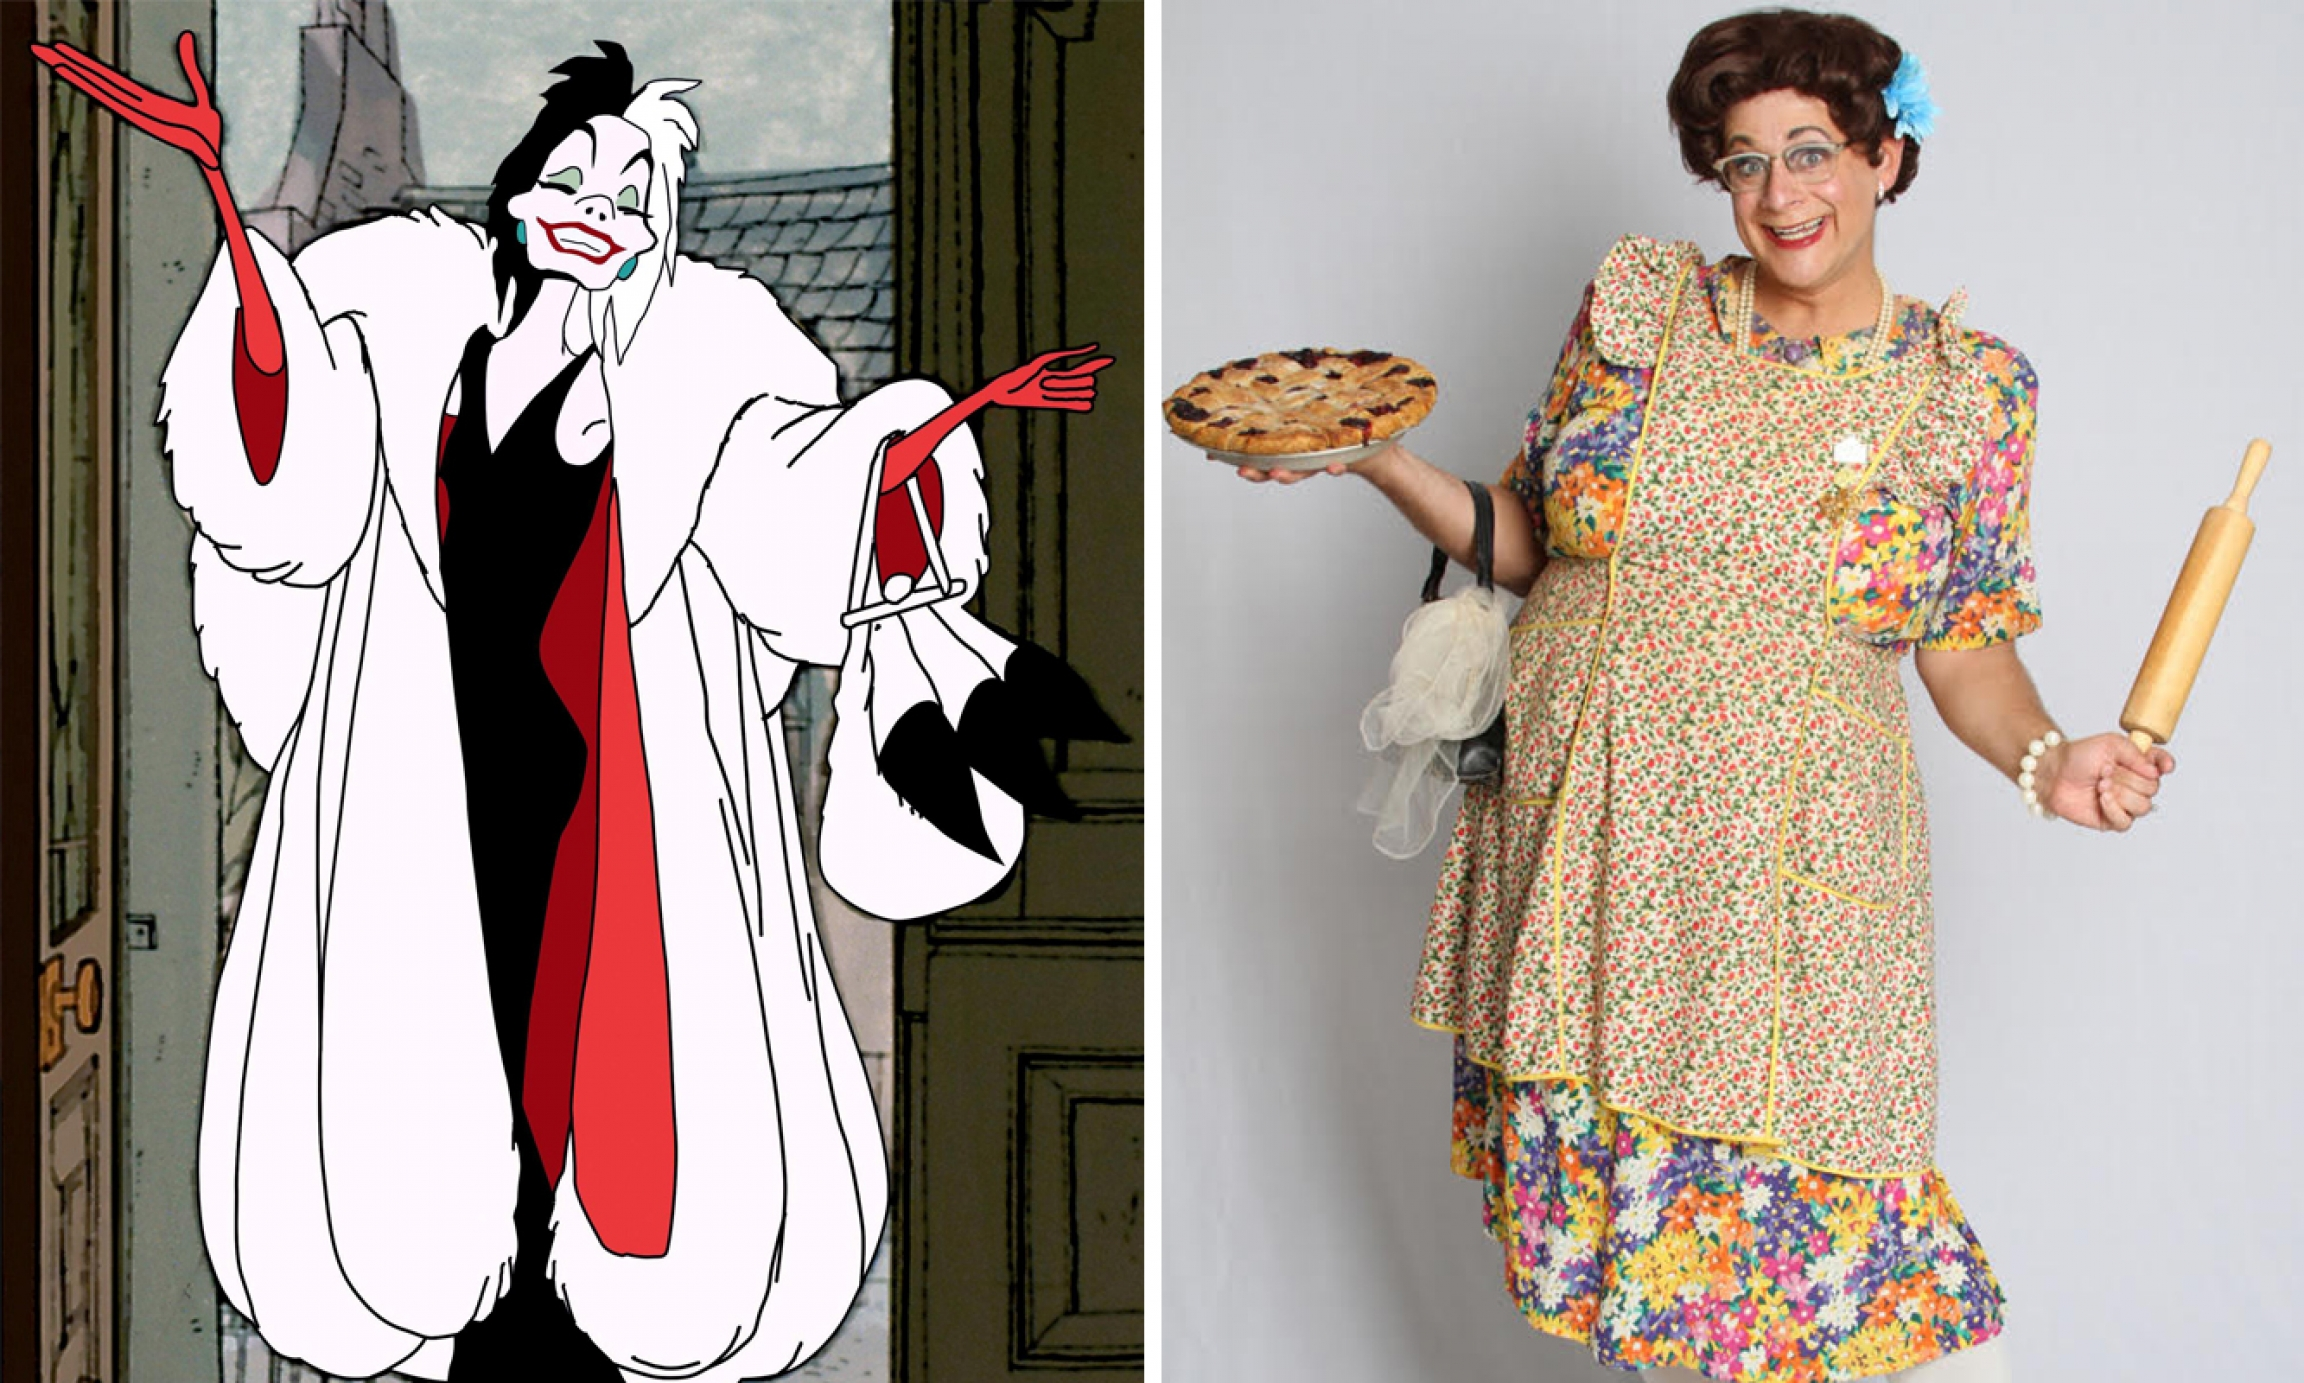 Cruella de Vil and Michael Bowen as Bertha Mason